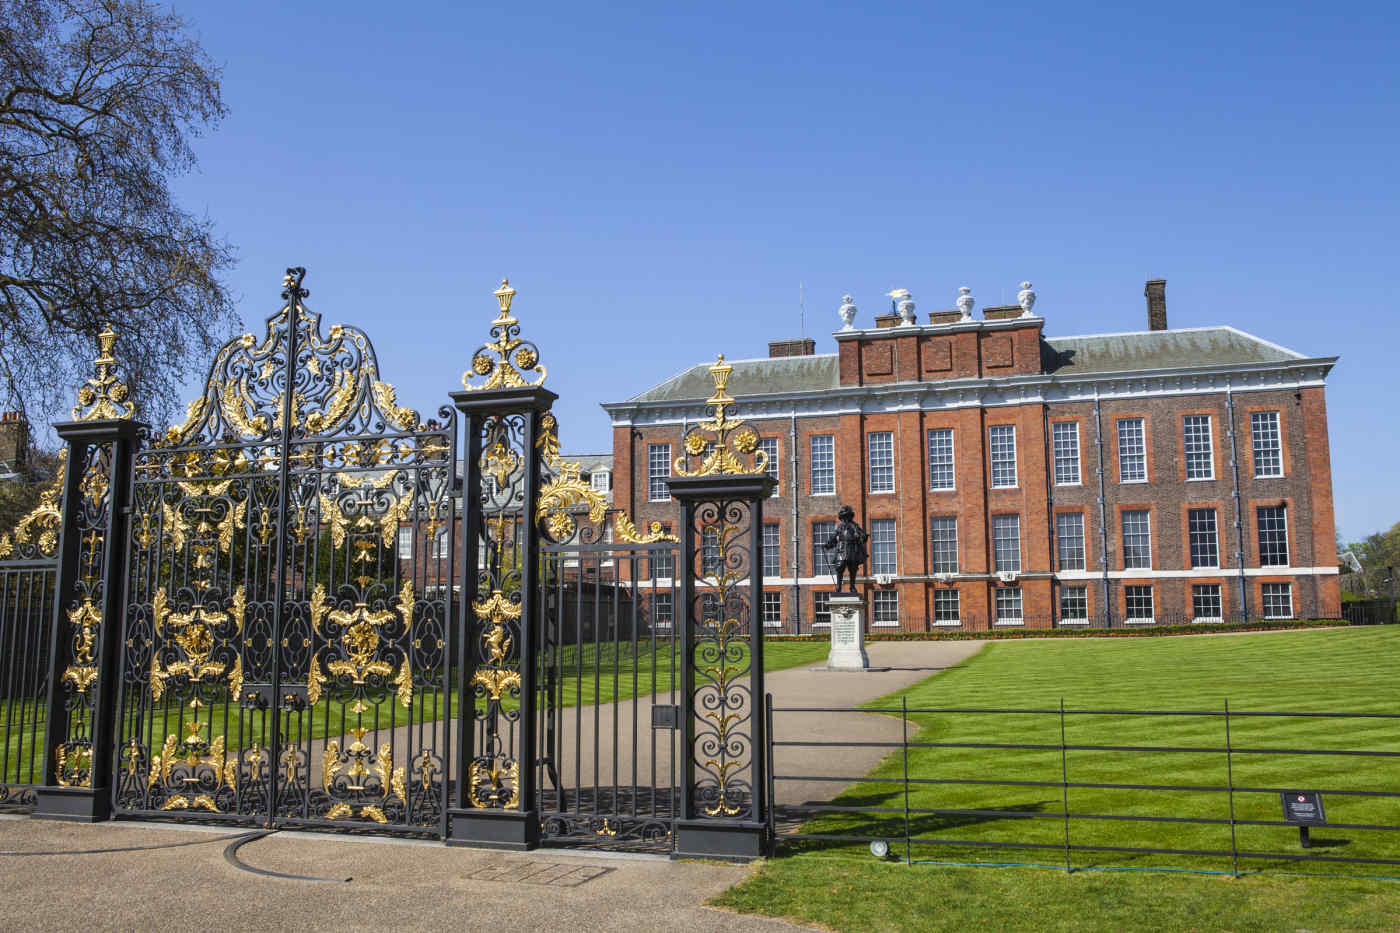 Kensington Palace • London, England